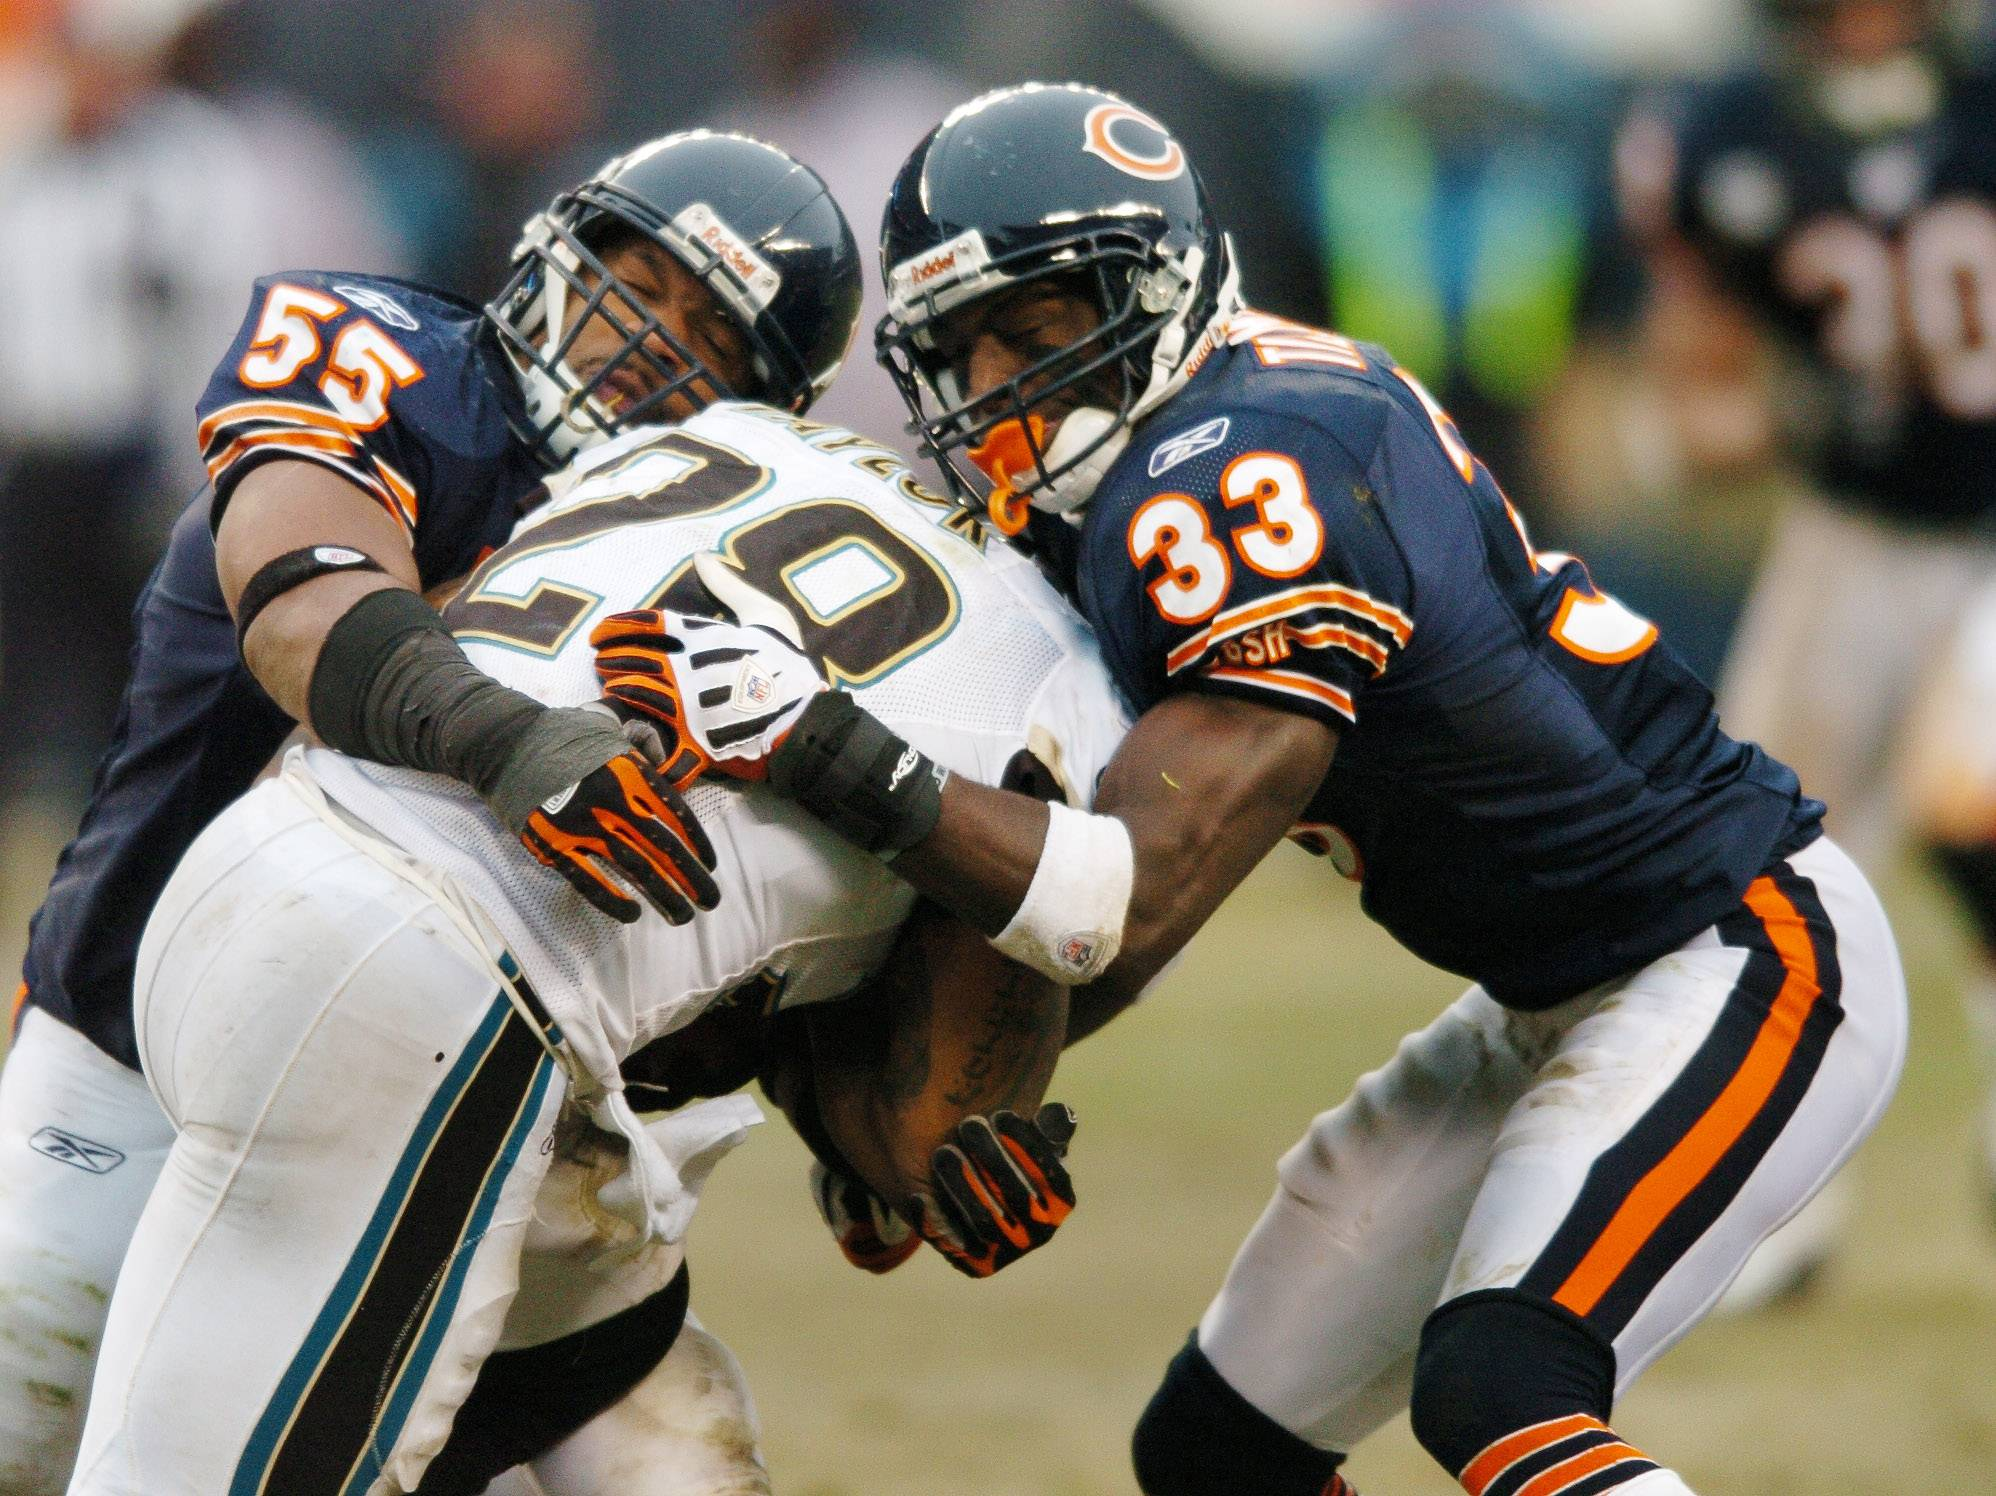 With injuries piling up in the last two seasons, Lance Briggs, left, and Charles Tillman are not likely to return to the Bears without a significant salary cut.